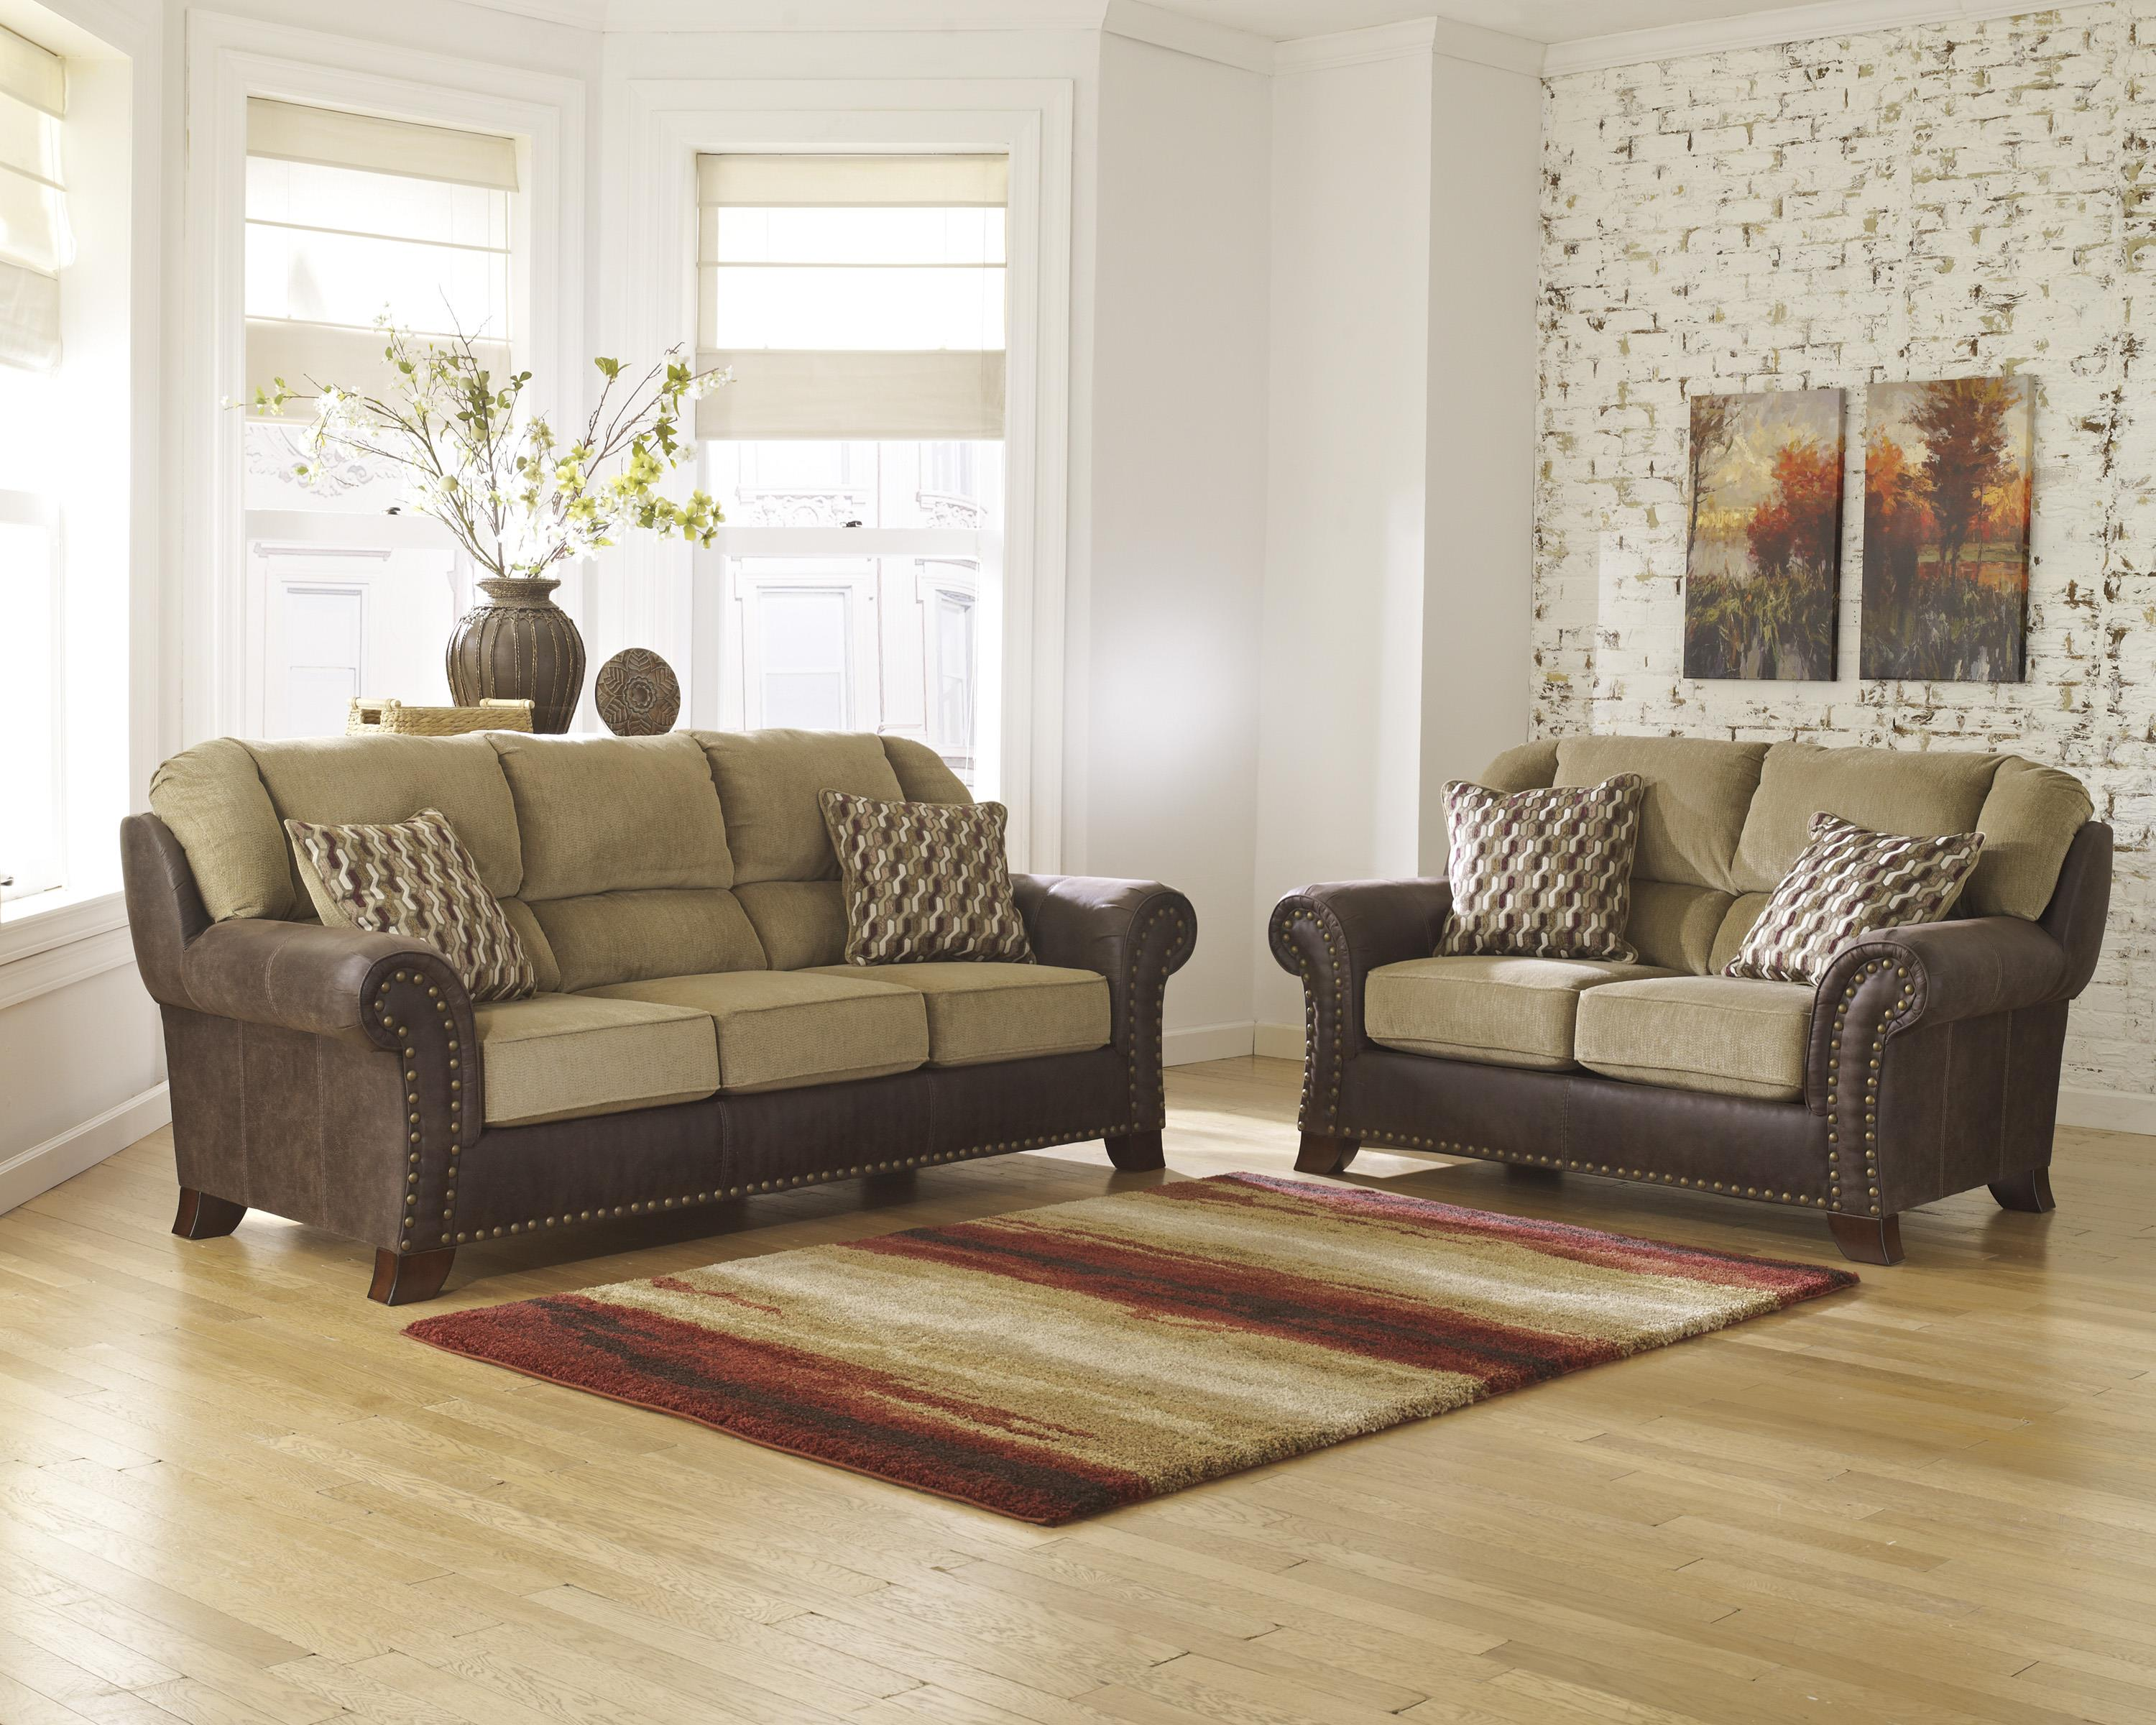 Two Tone Sofa with Chenille Fabric Faux Leather Upholstery by